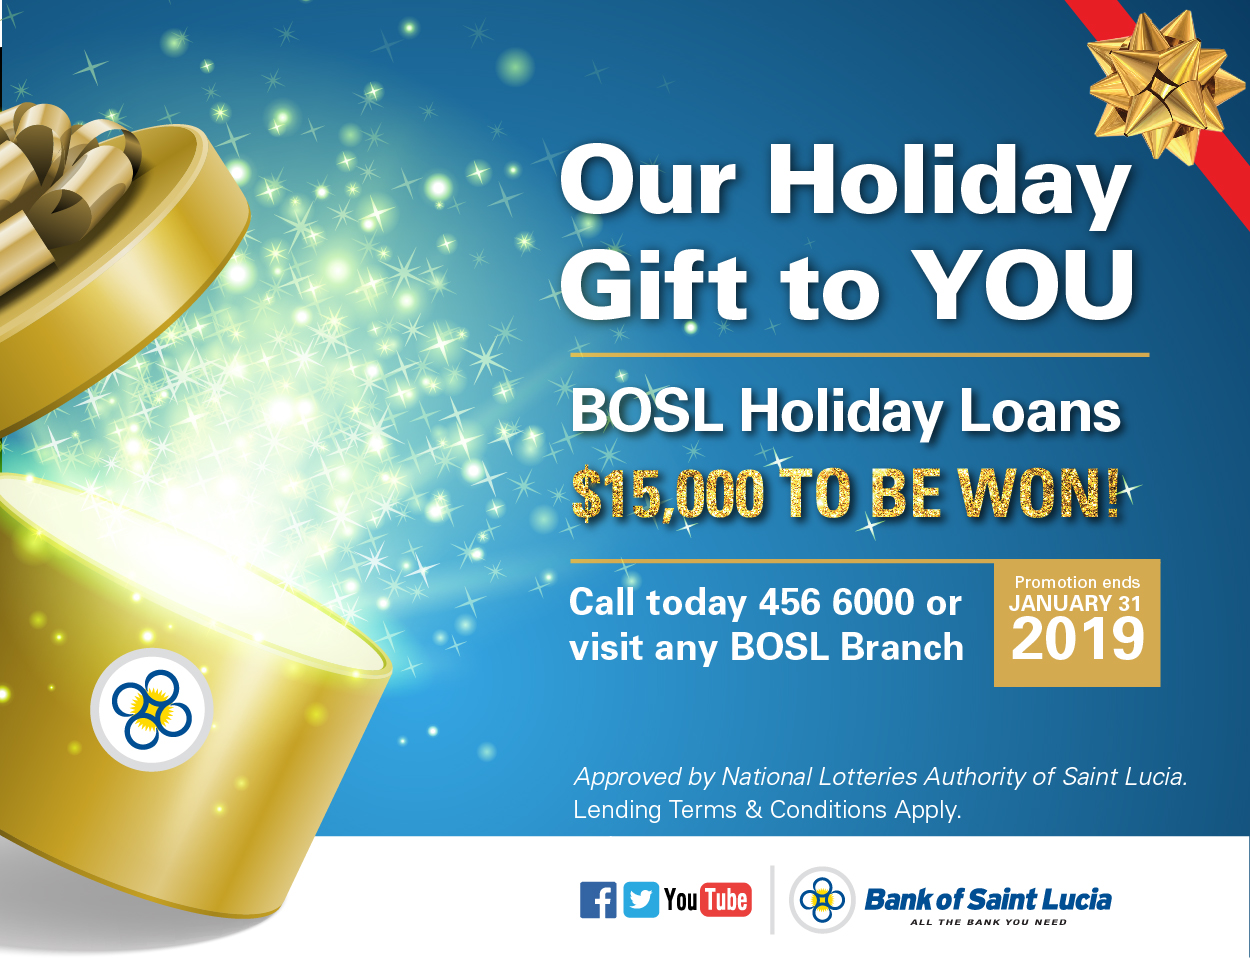 Our Holiday Gift to You With $15,000 to be Won!